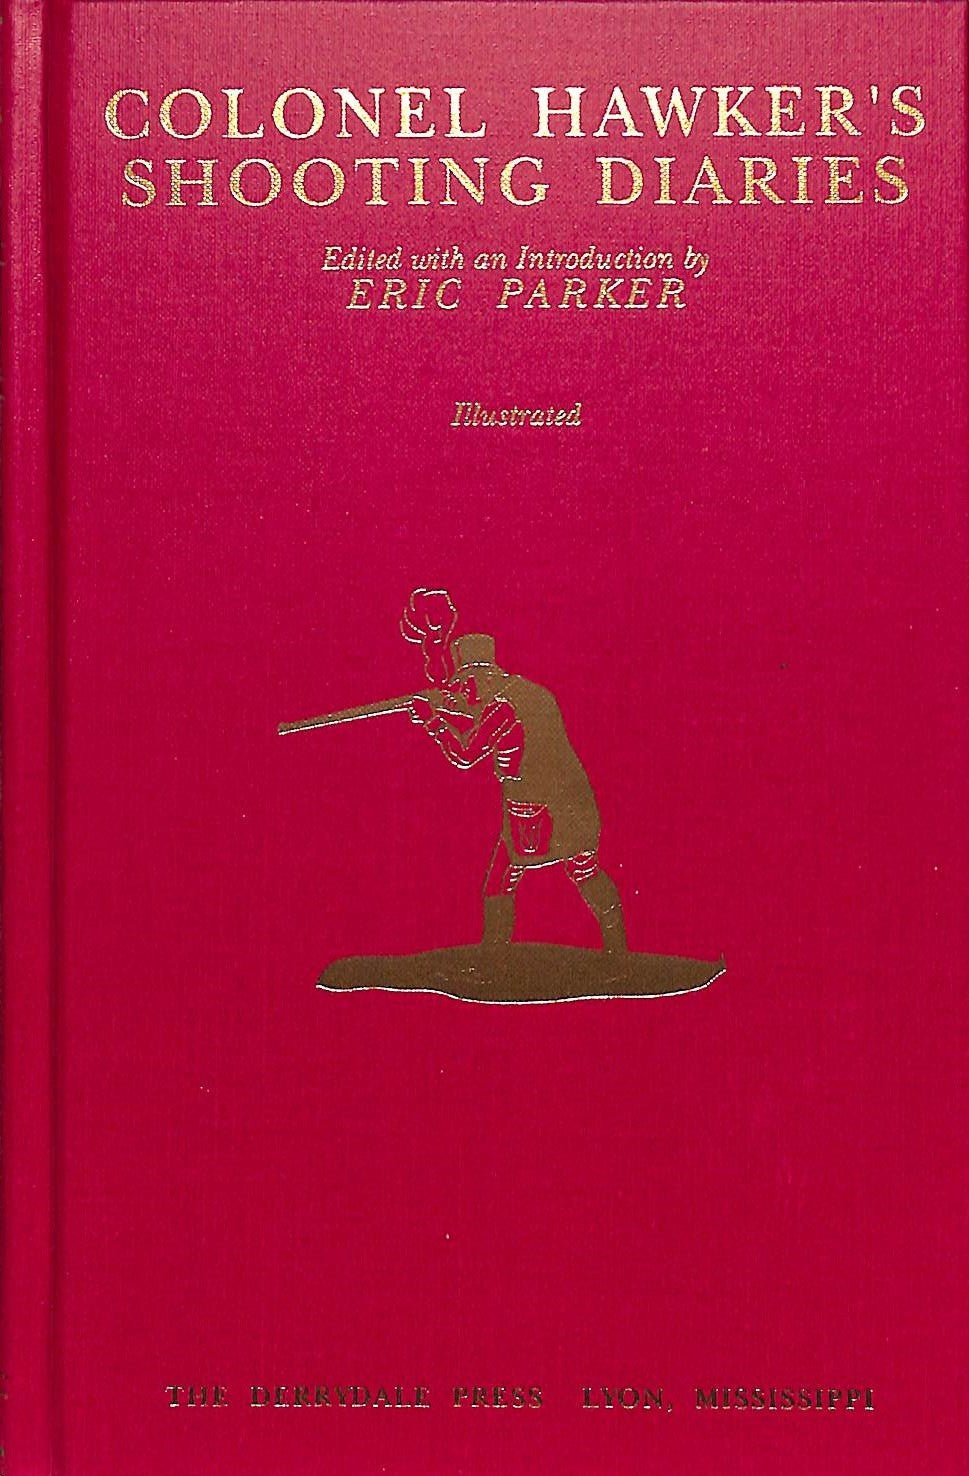 """Colonel Hawker's Shooting Diaries"" 1990 PARKER, Eric"